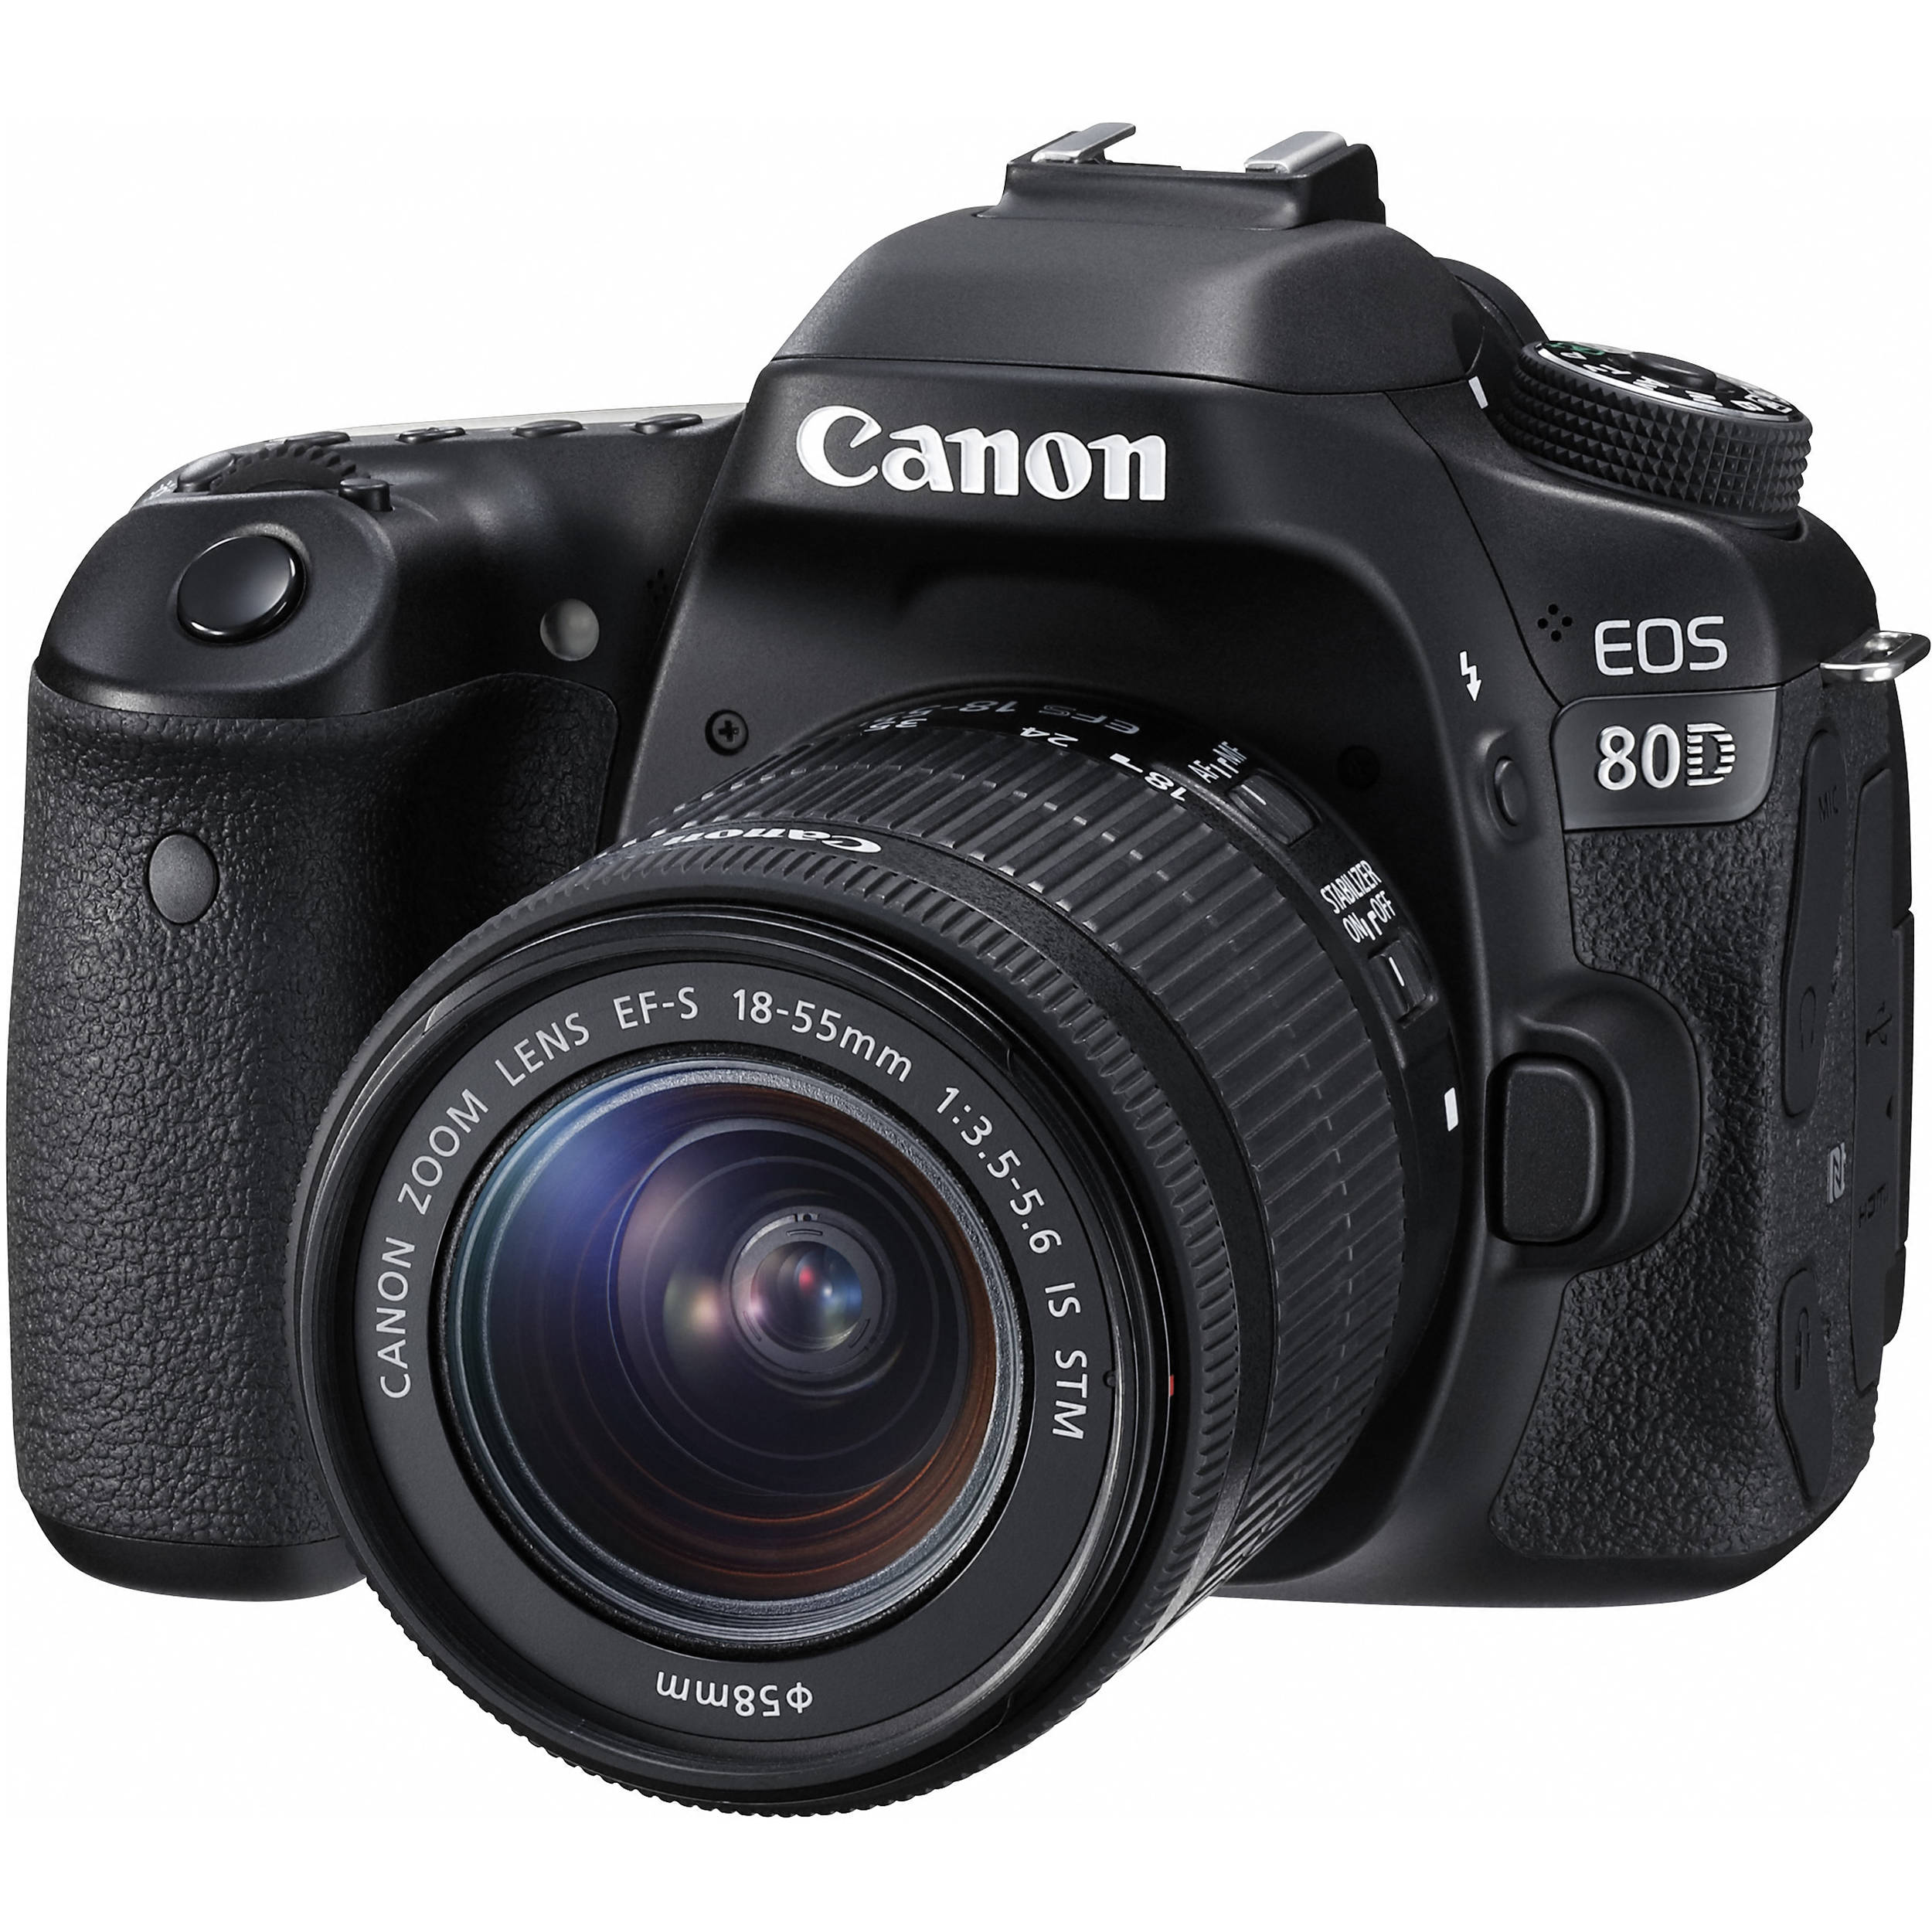 Canon EOS 80D DSLR Camera with 18-55mm Lens 1263C005 B&H Photo